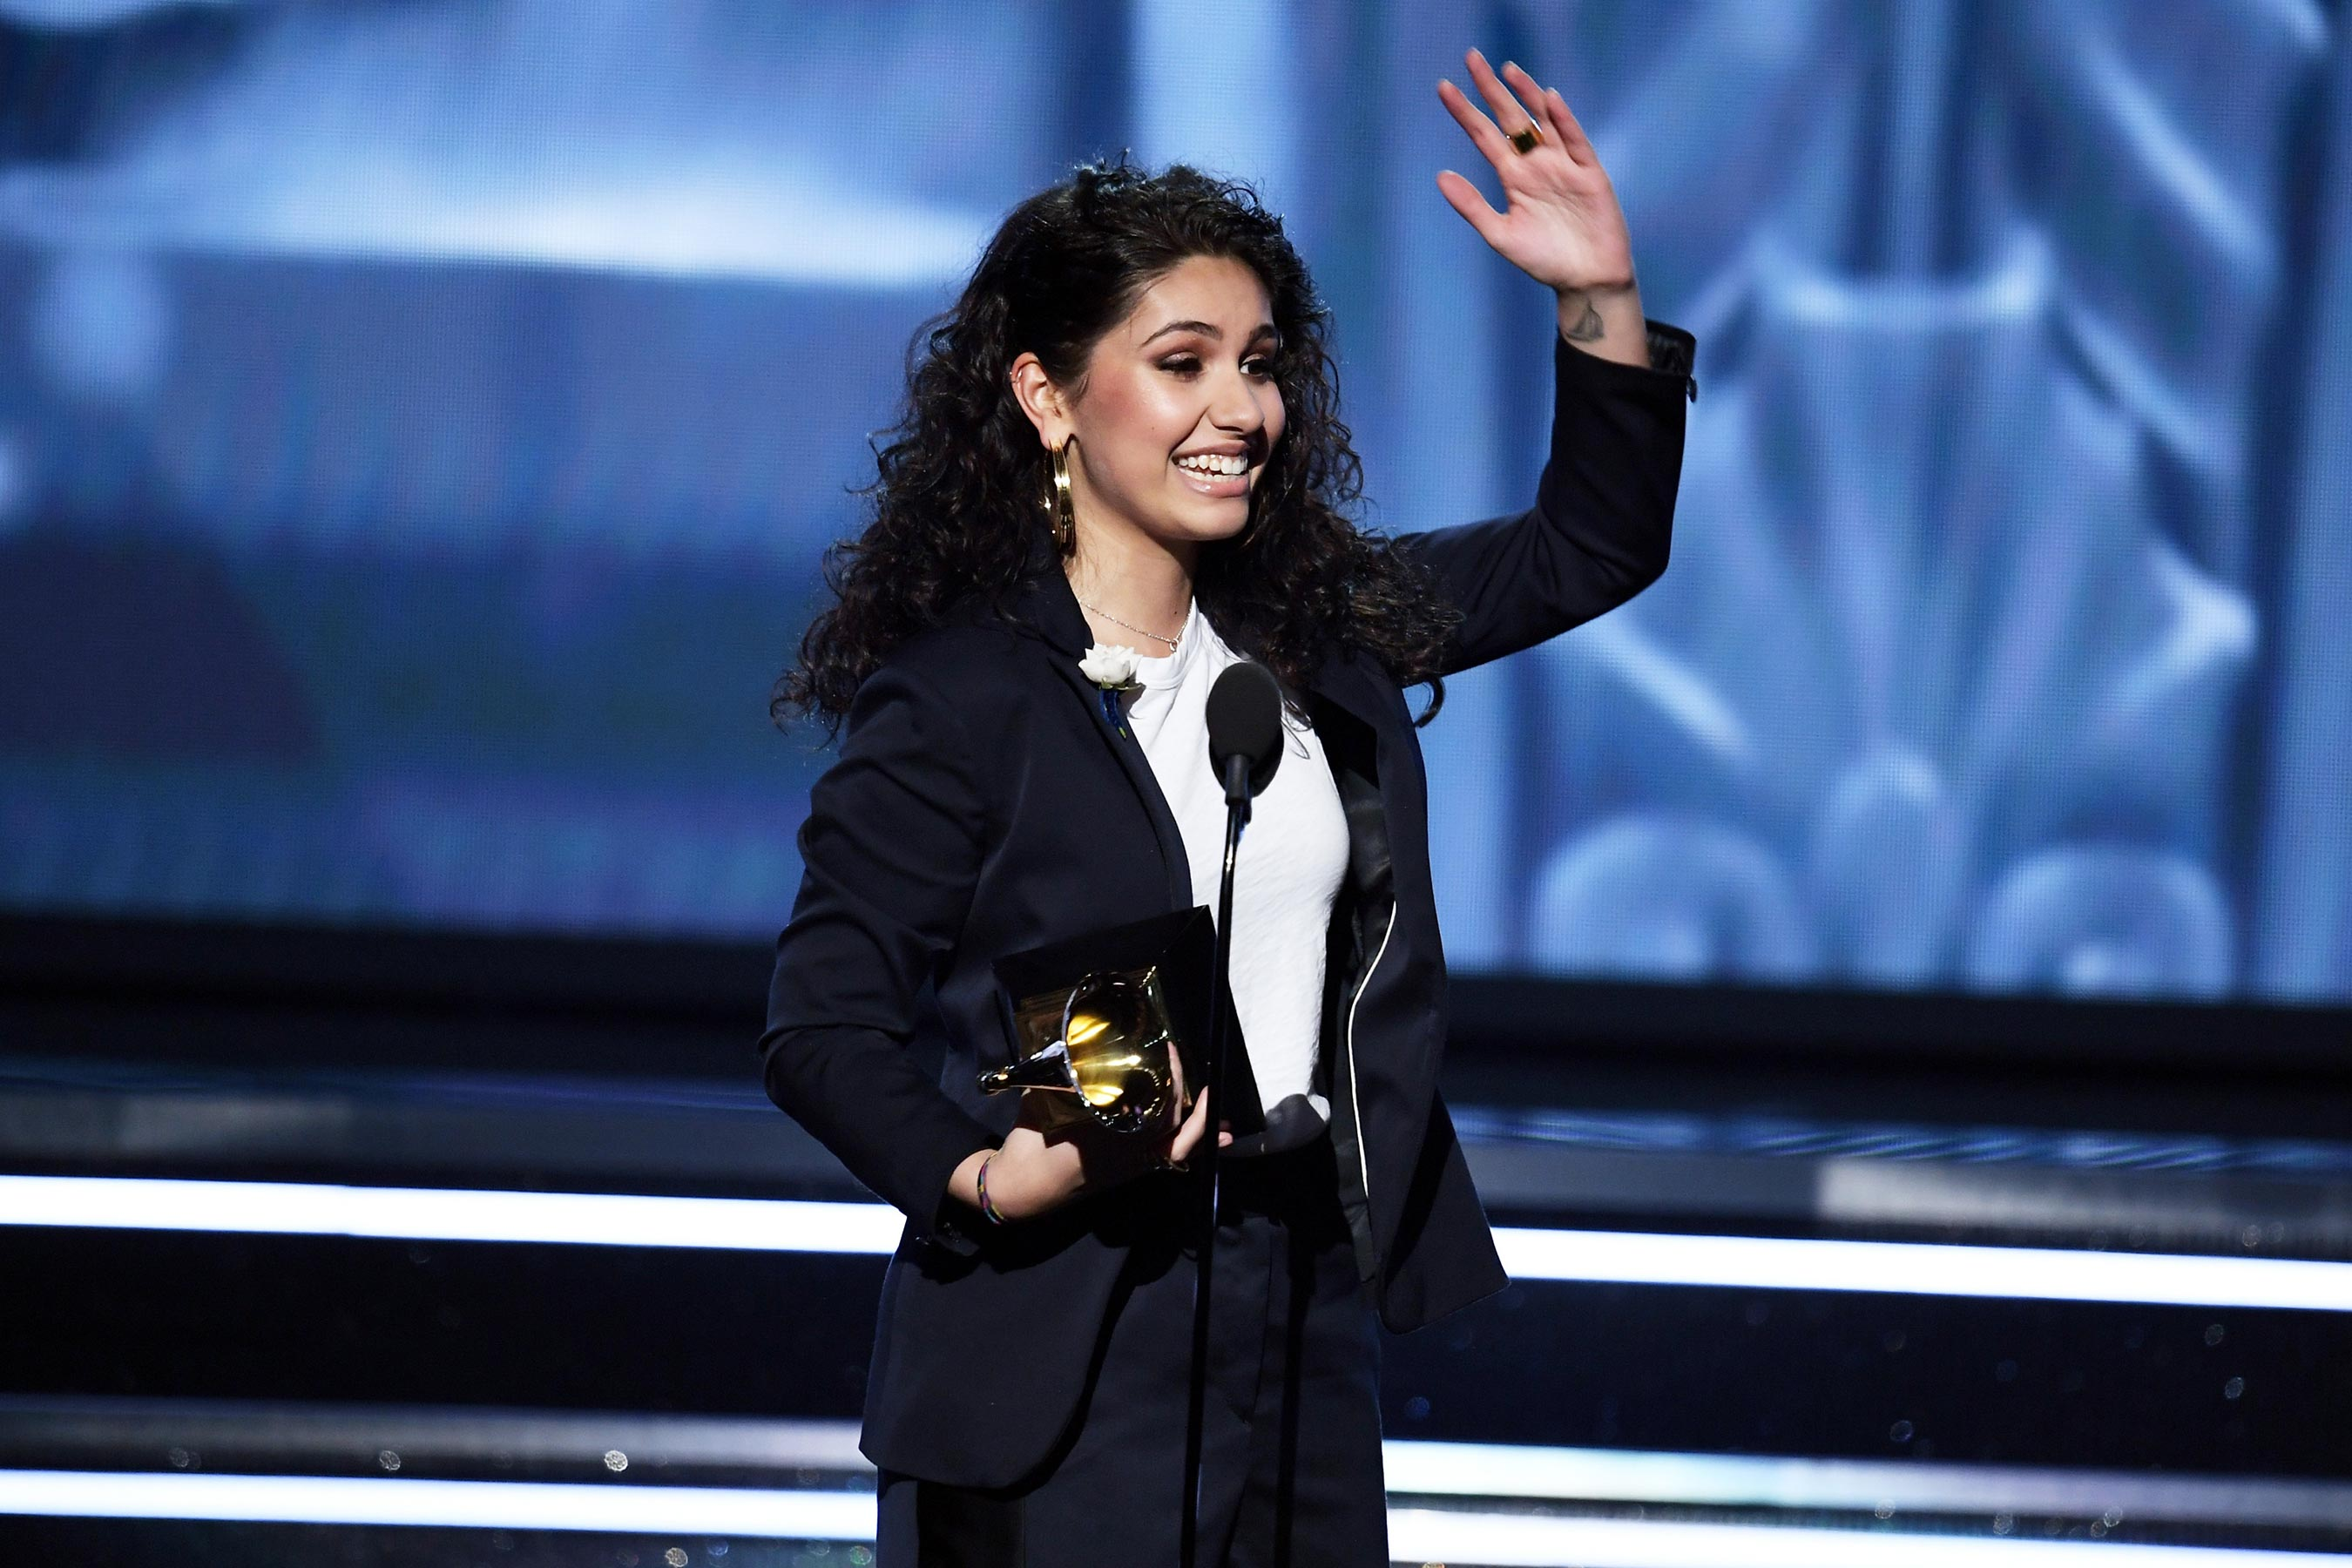 Alessia Cara defends Grammy win in empowering note